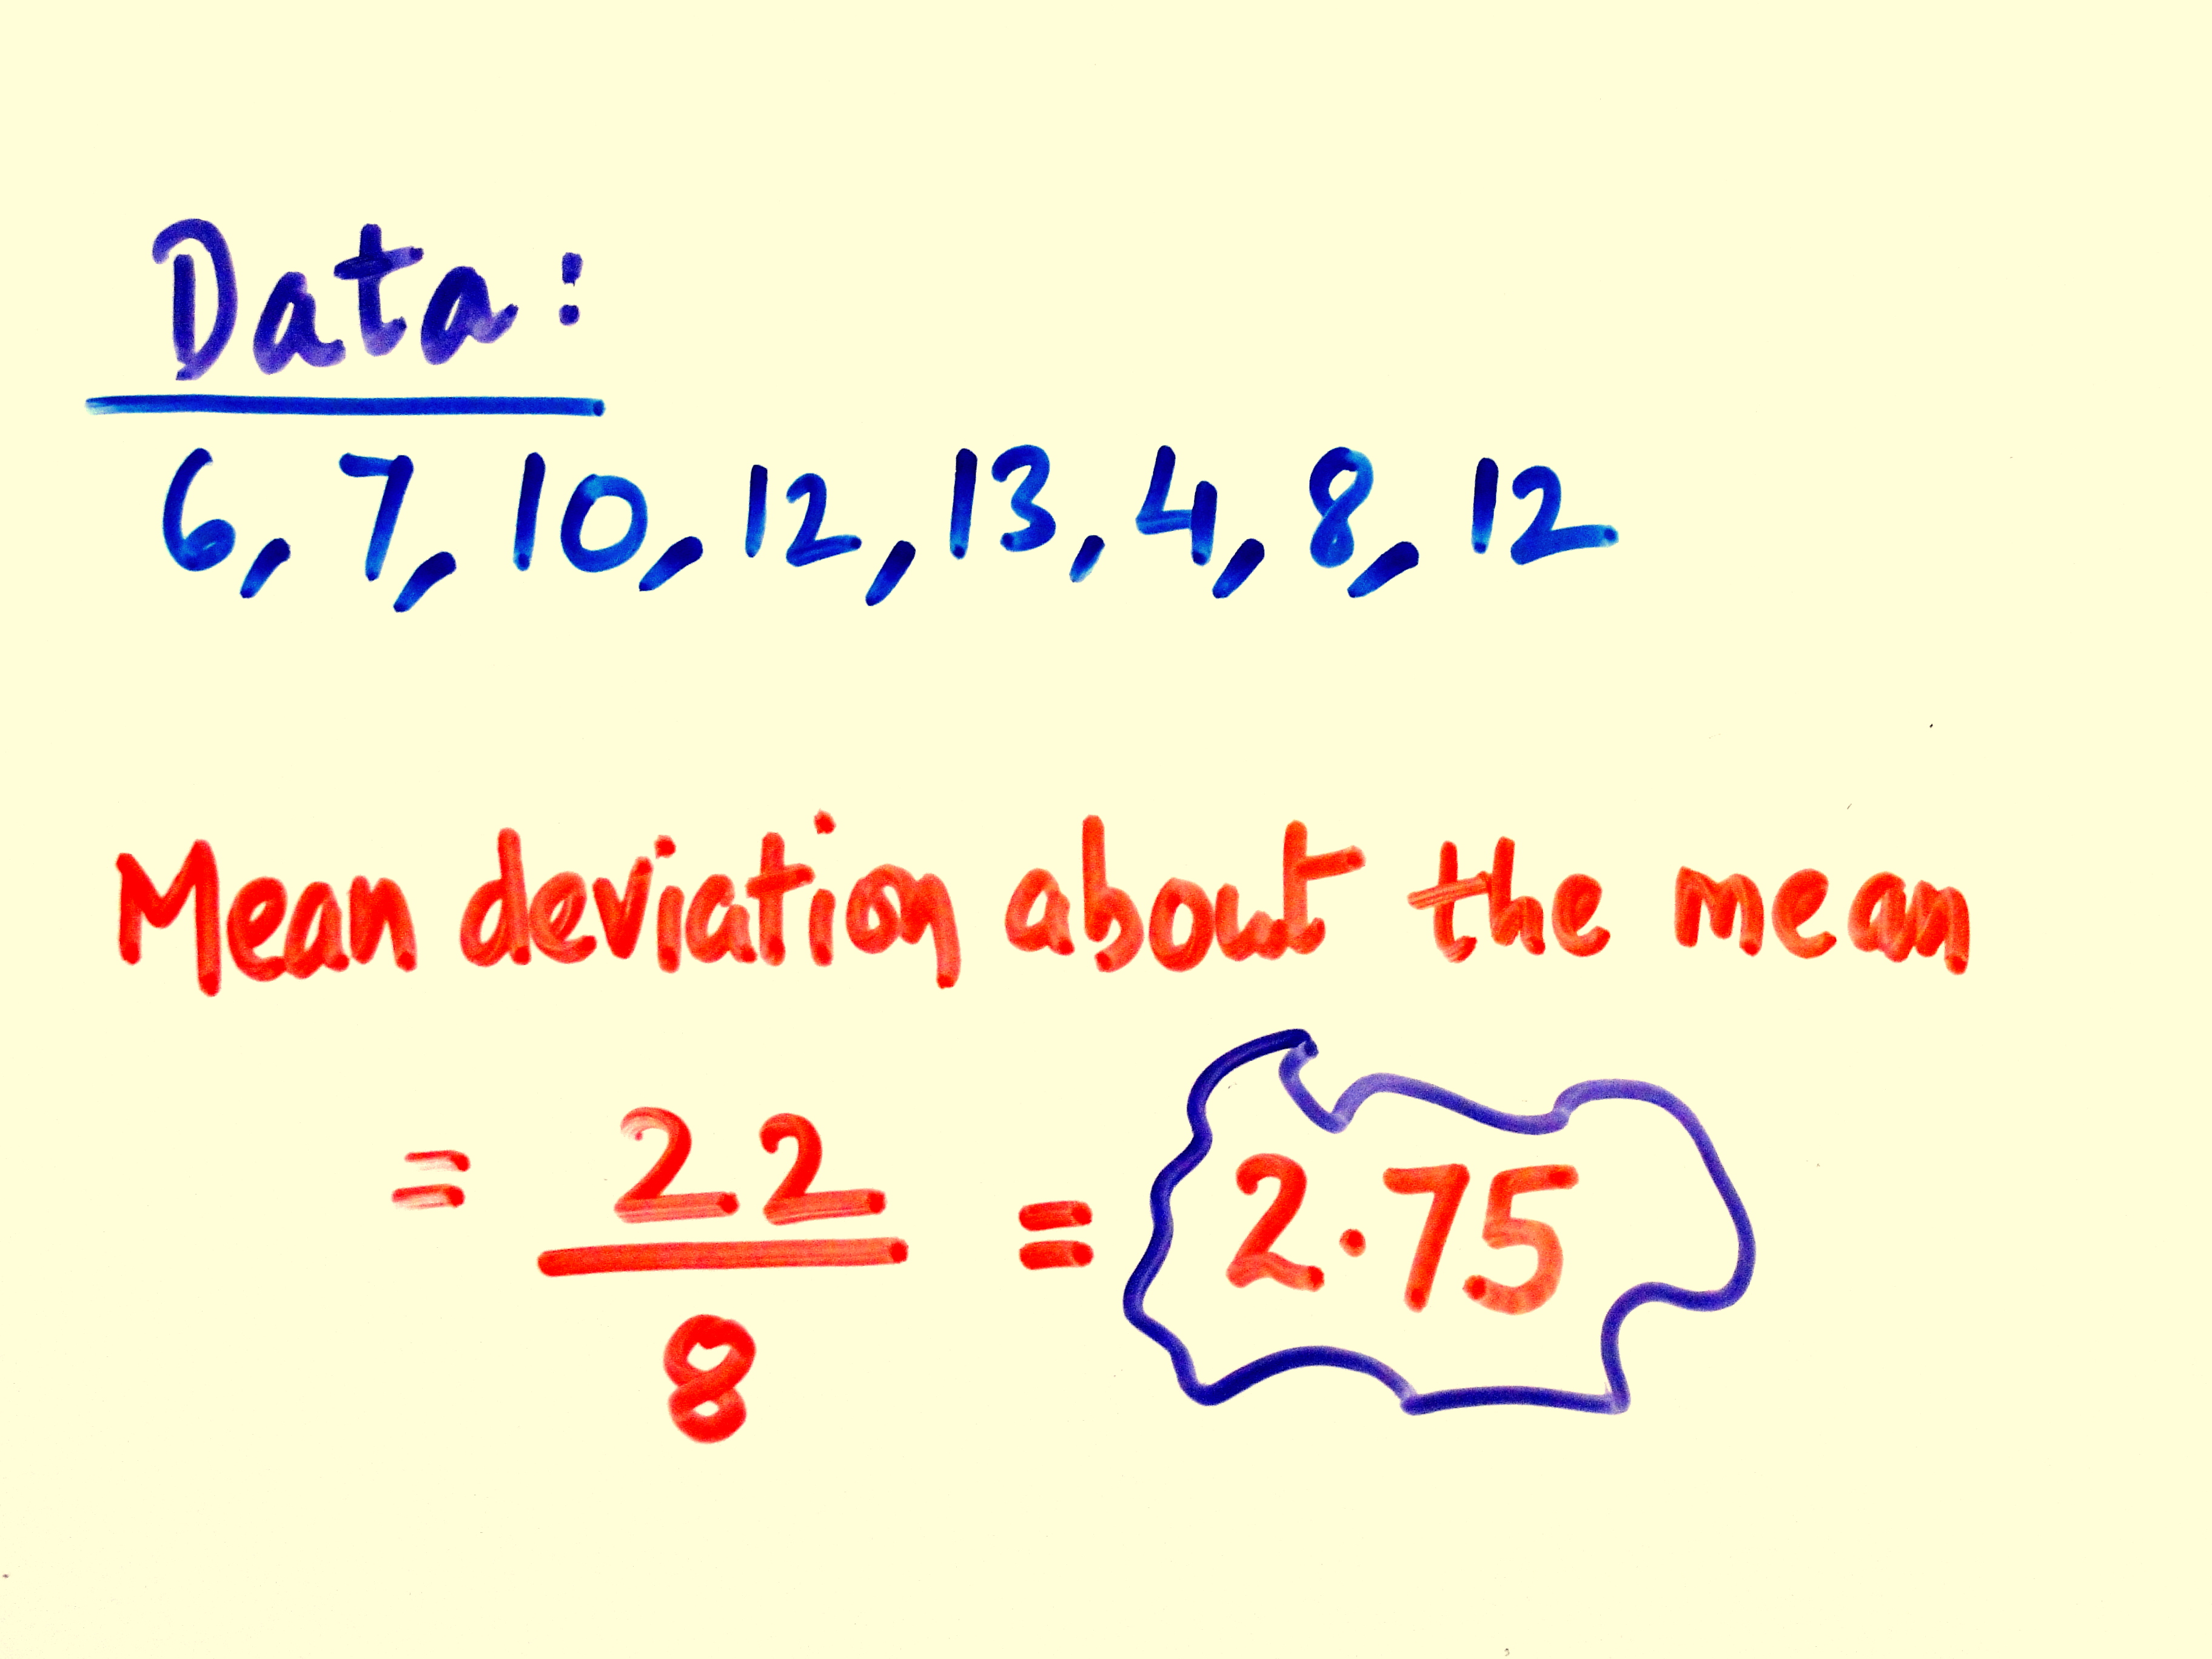 How To Calculate Mean Deviation About Mean For Ungrouped